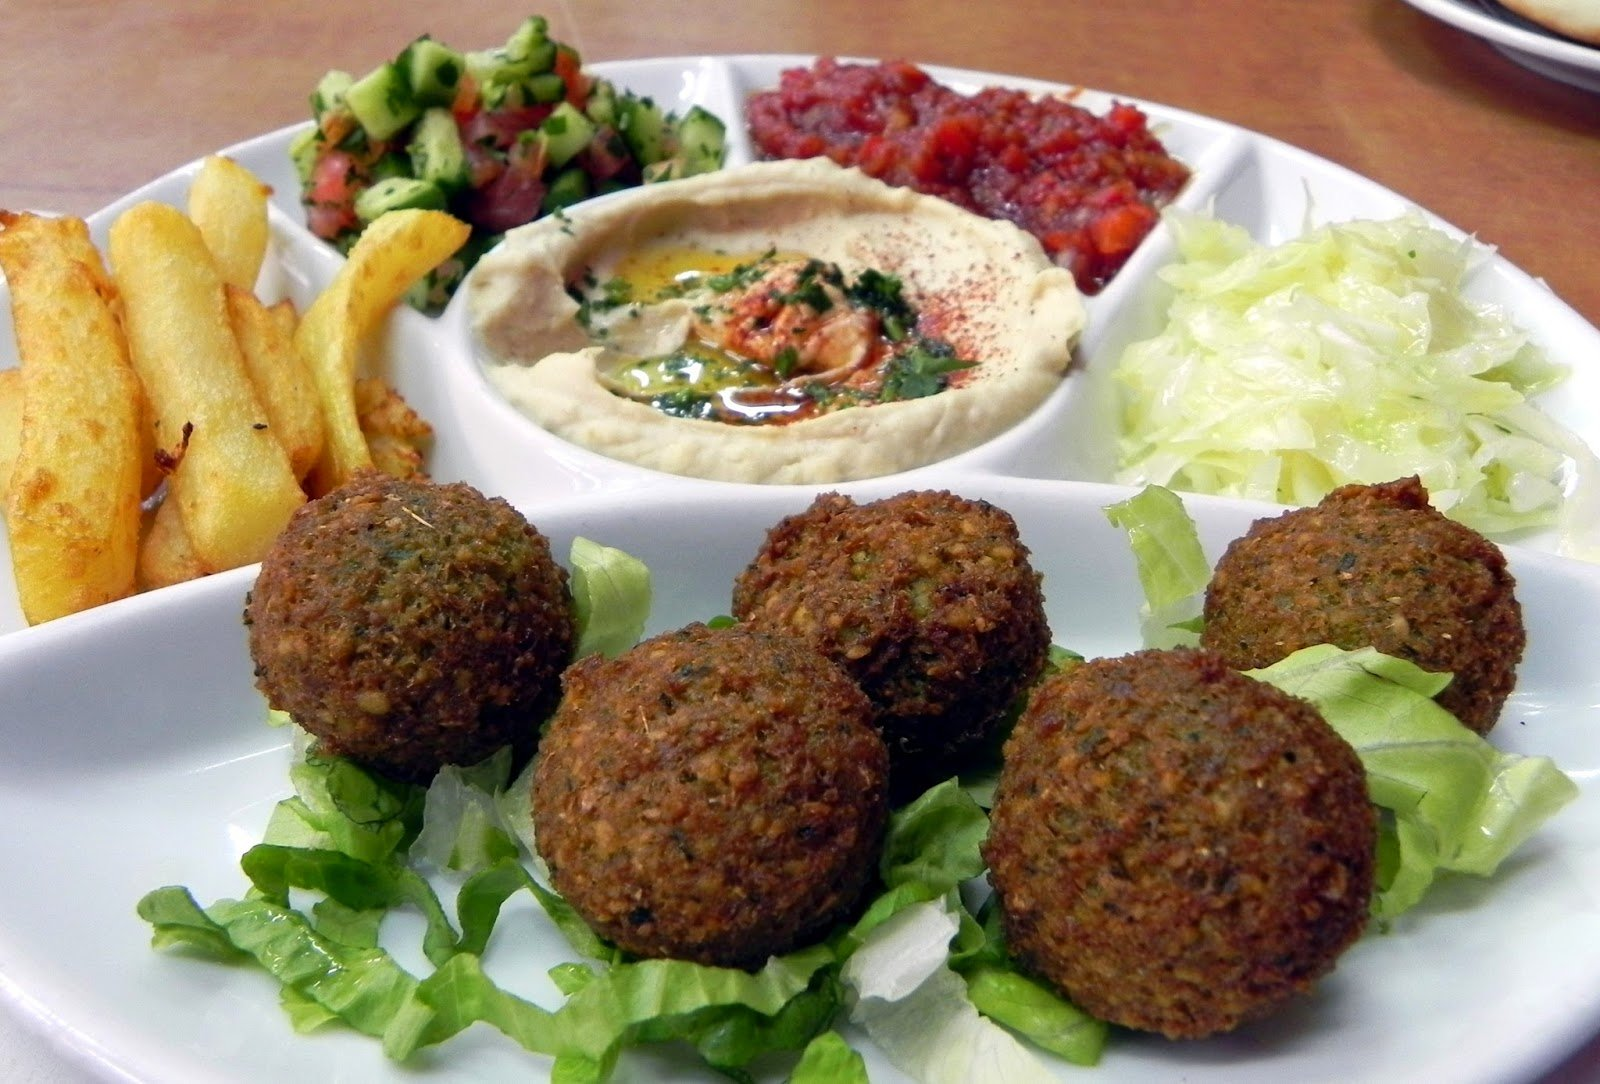 Falafel - A culinary tour of Dubai